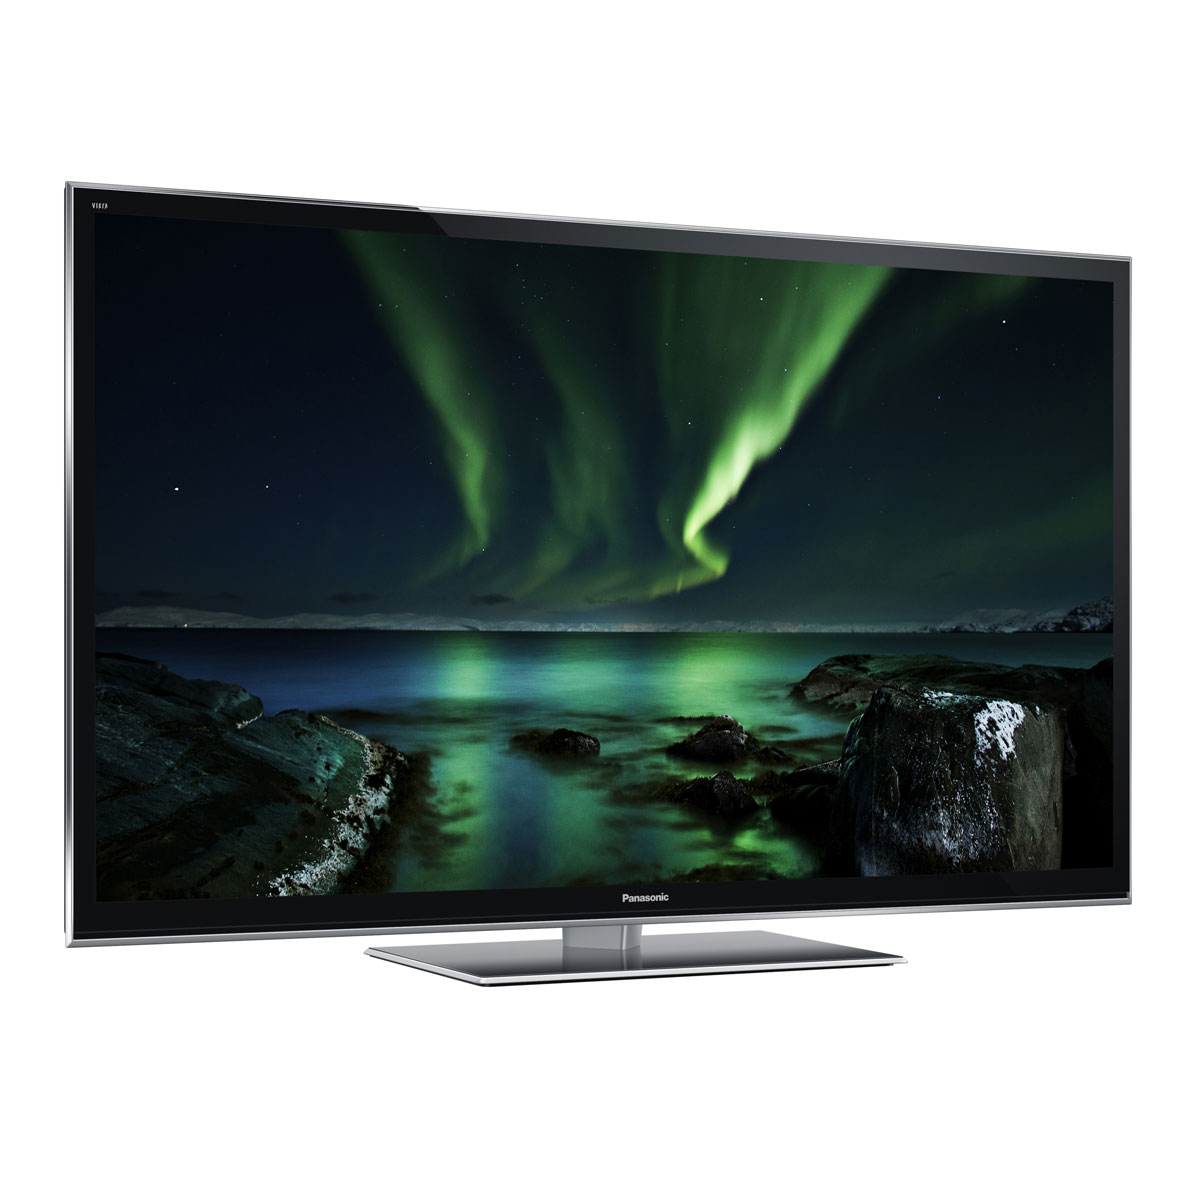 panasonic tx p65vt50e tv panasonic sur. Black Bedroom Furniture Sets. Home Design Ideas